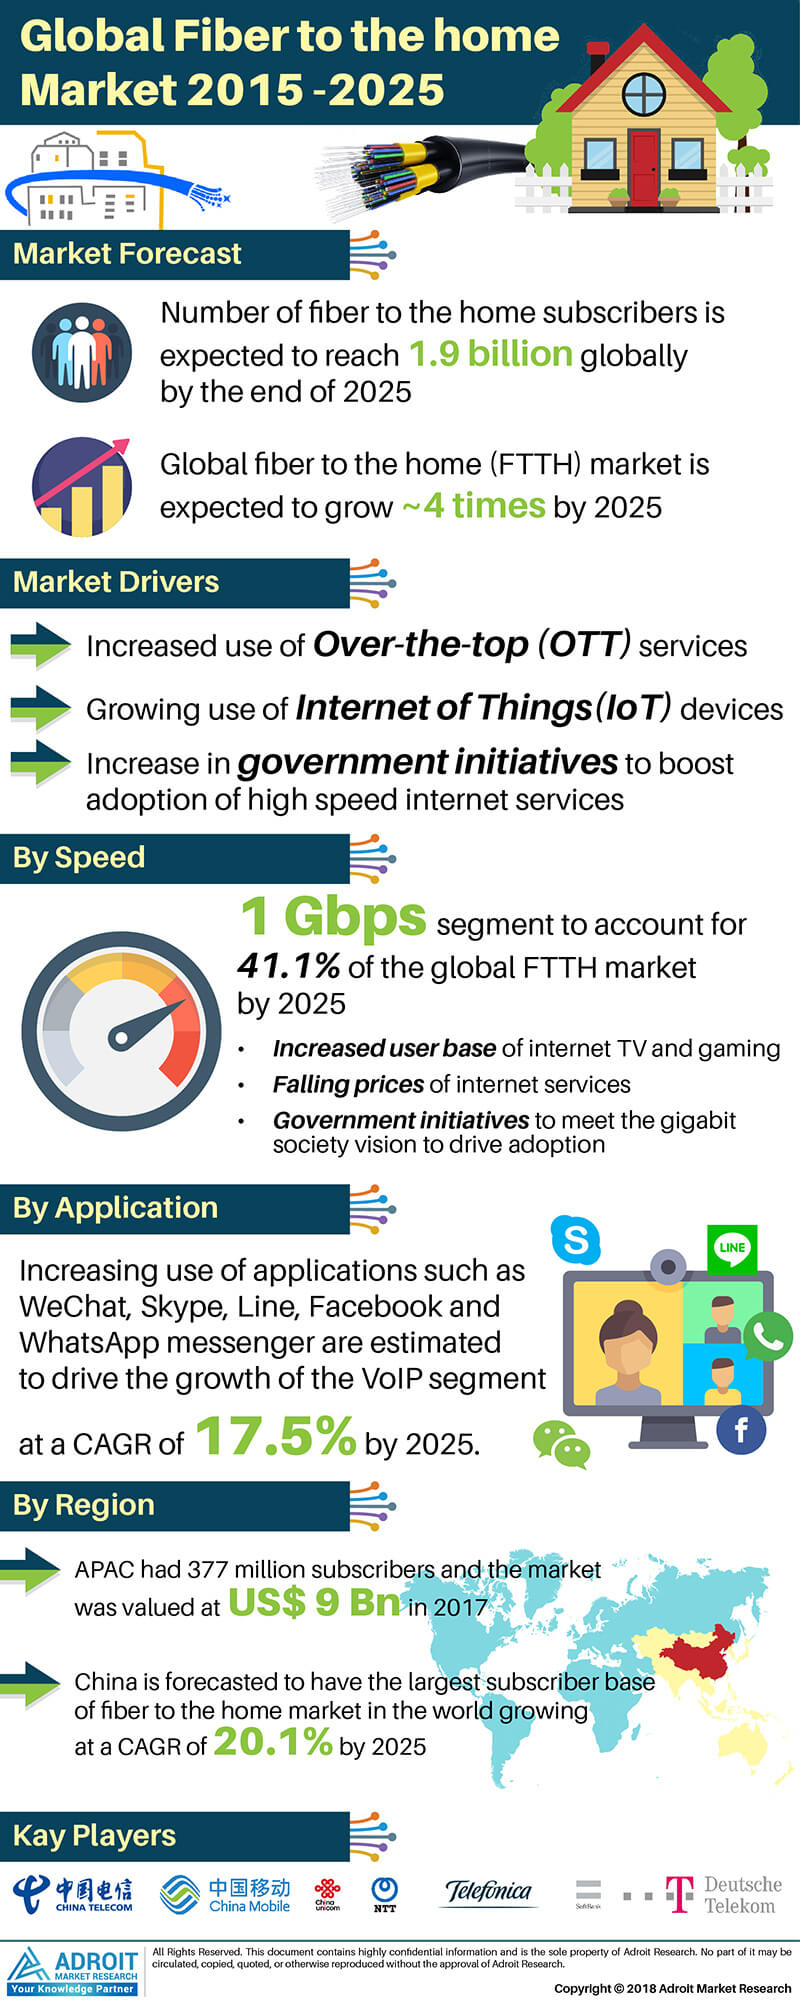 Global Fiber to the Home Market 2015-2025, By Speed, Application, Region, Trends and Forecast Report